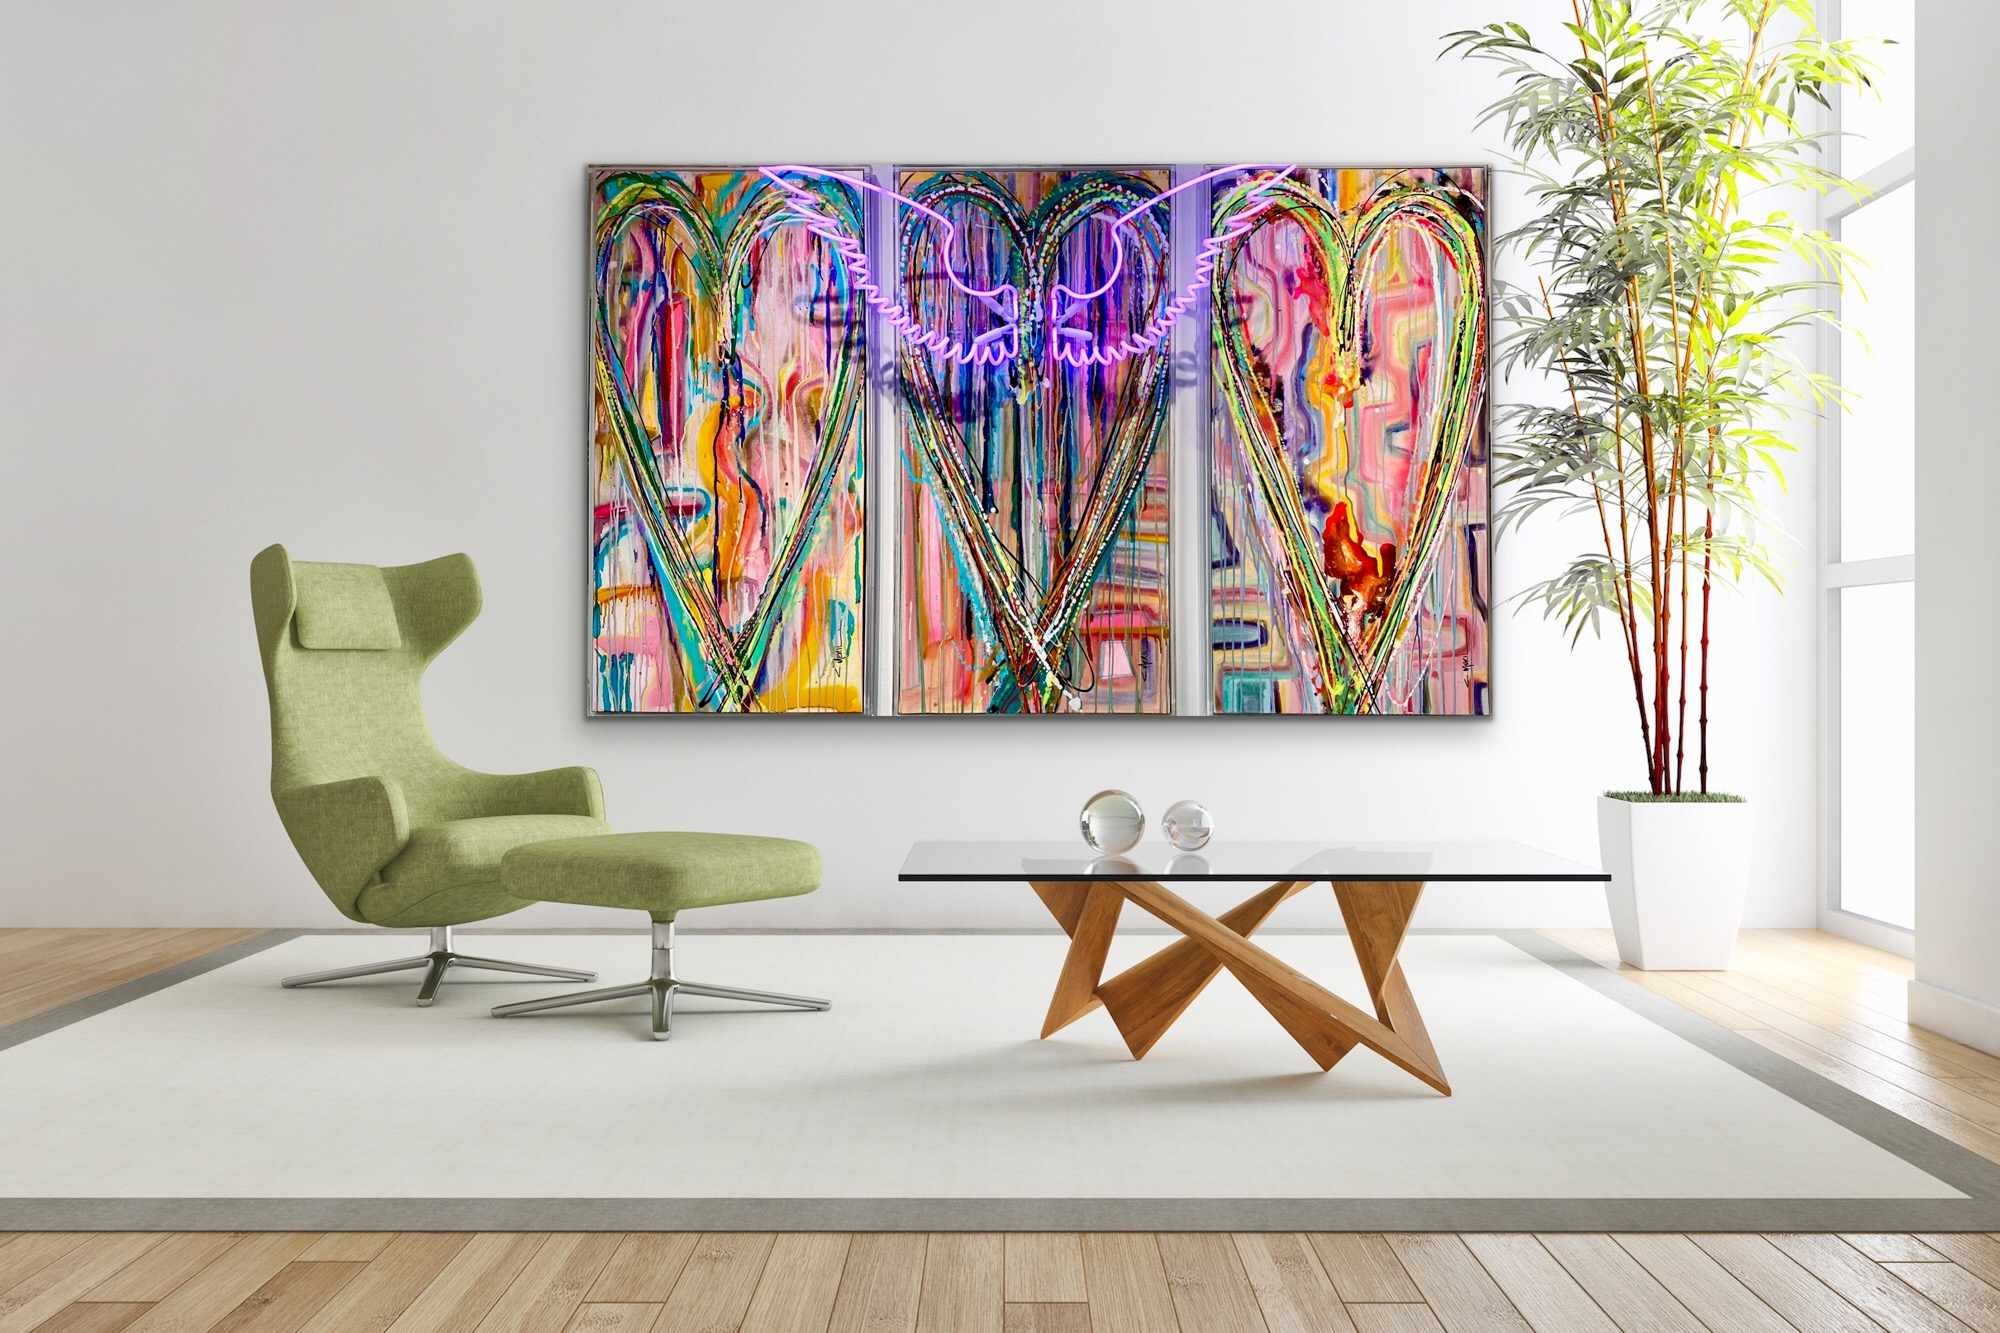 CHRISTI MERIL ART-IT'S A WONDERFUL LIFE-DALLAS ABSTRACT EXPRESSIONIST-DALLAS ABSTRACT ARTIST-DALLAS HEART ART-DALLAS NEON ART-DALLAS POP ART-2